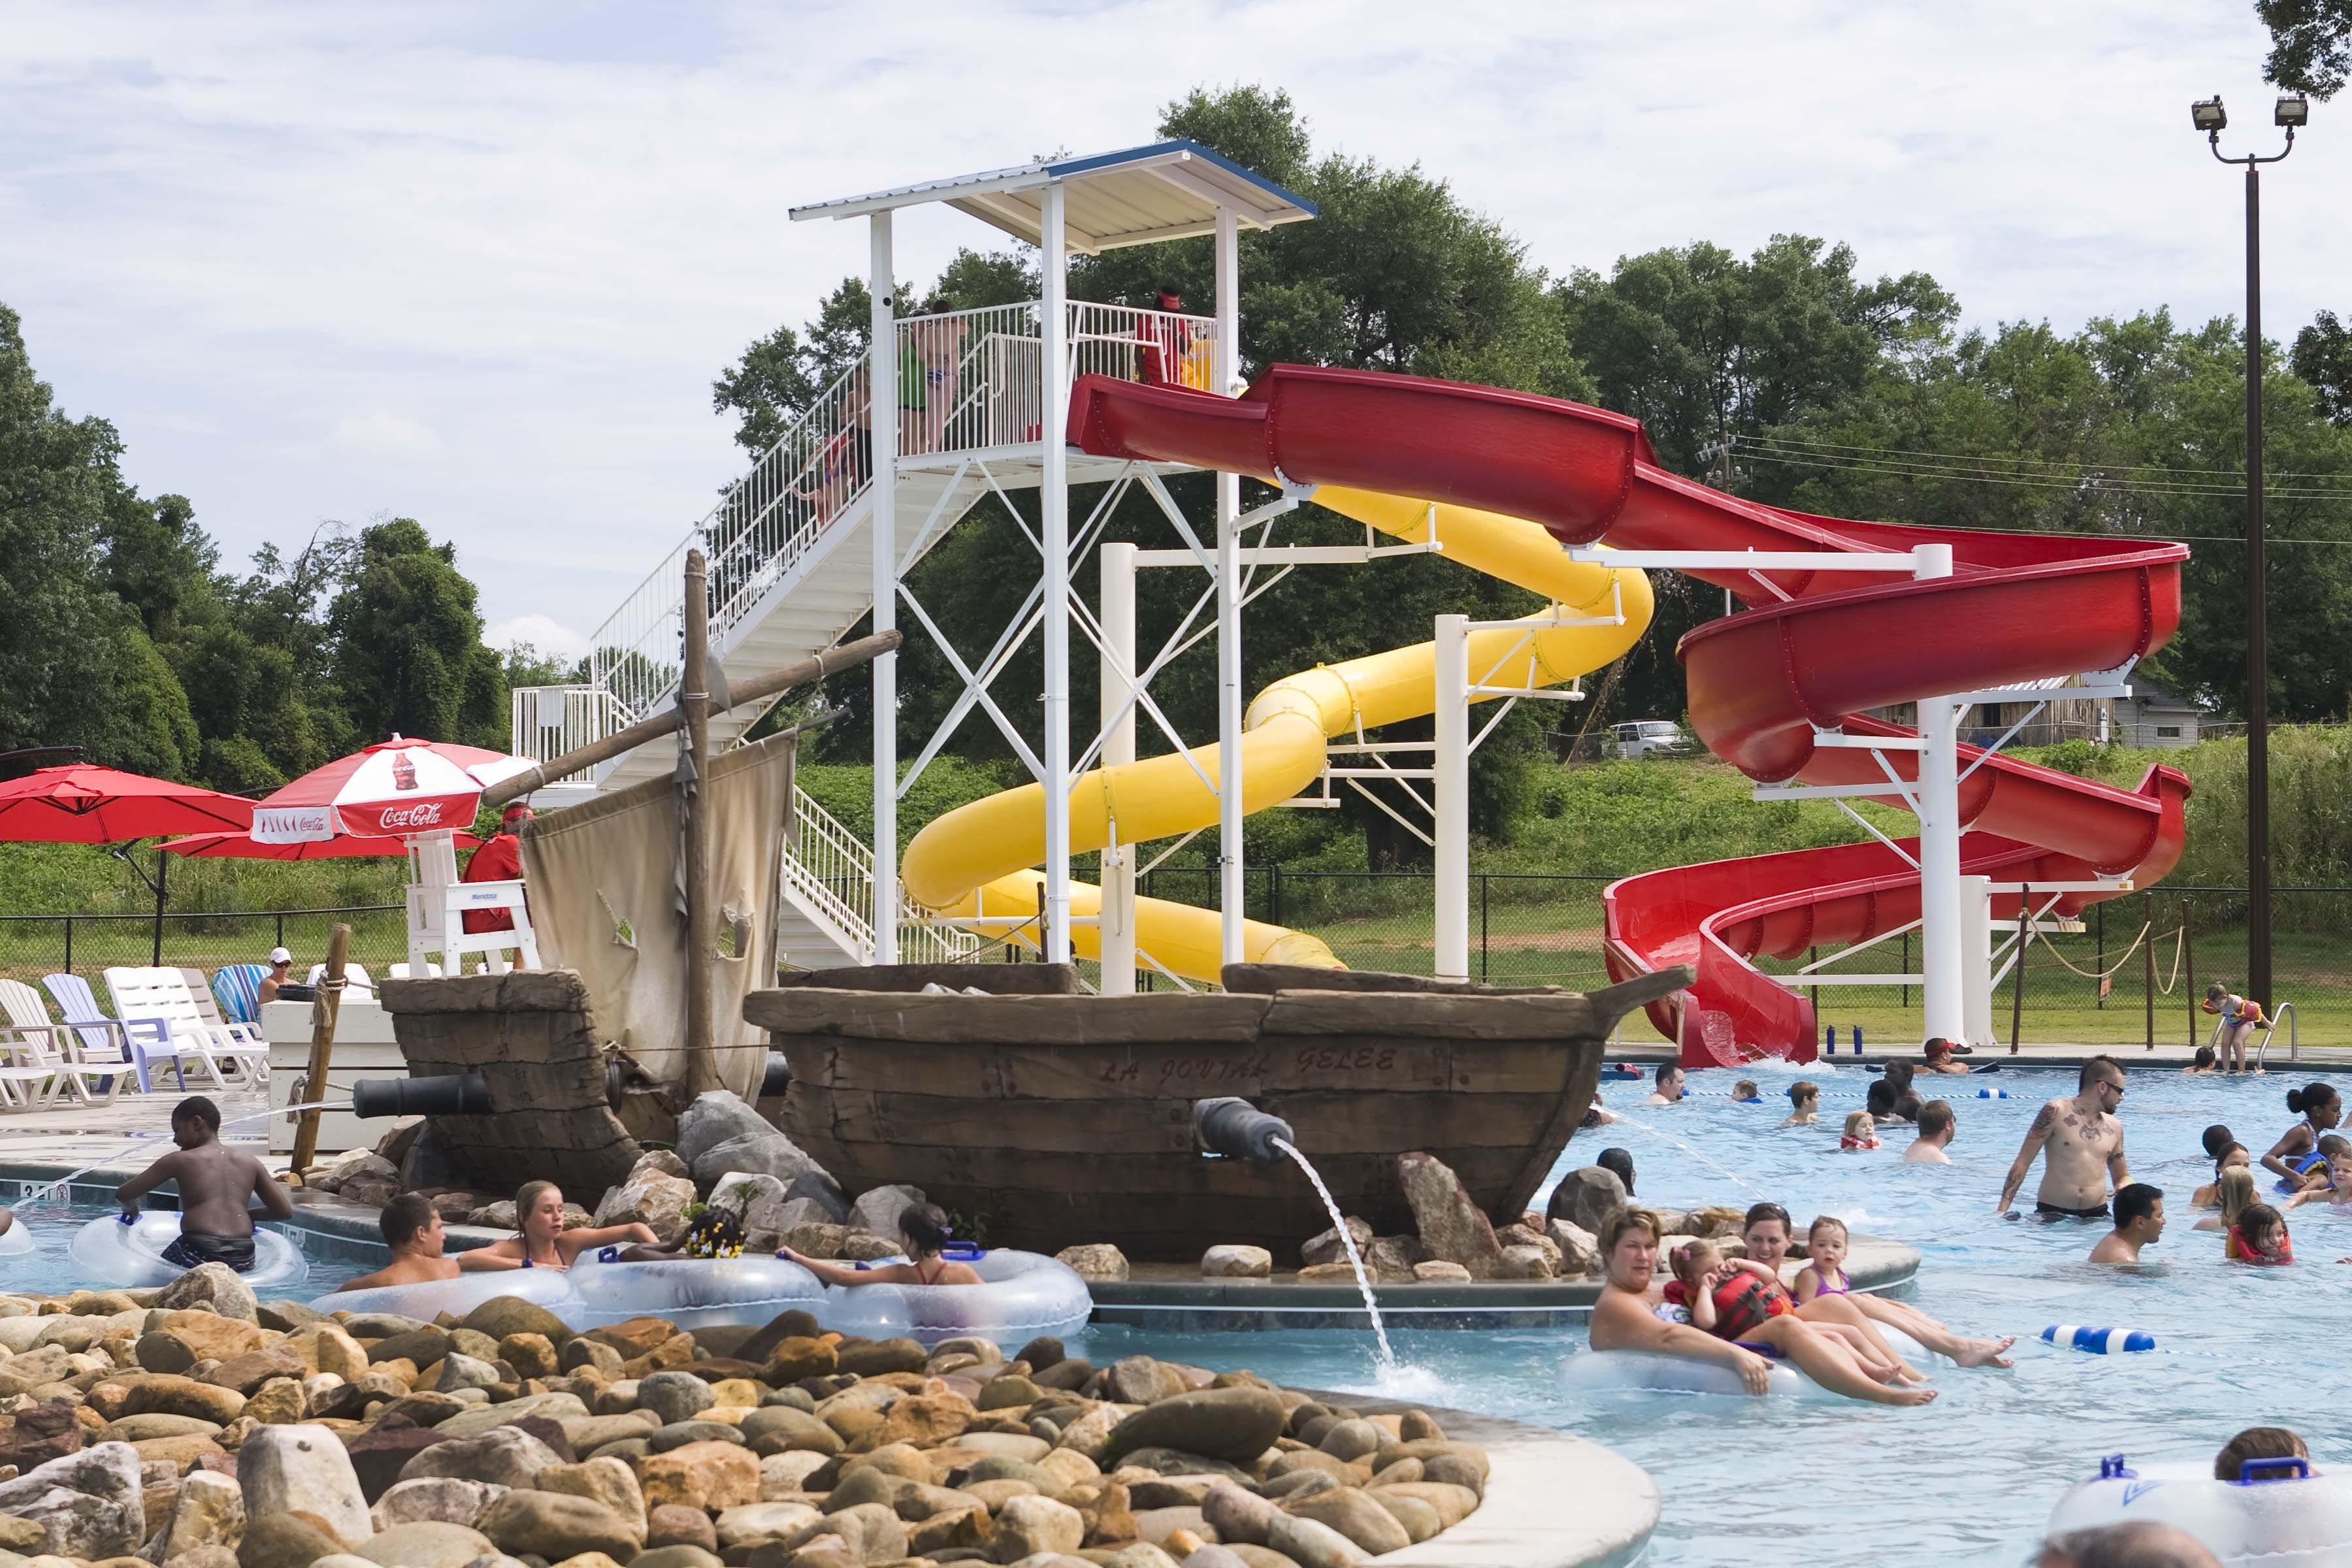 Cool Off At Shipwreck Cove Waterpark In Spartanburg Sc Get Outdoors Pinterest Cove F C